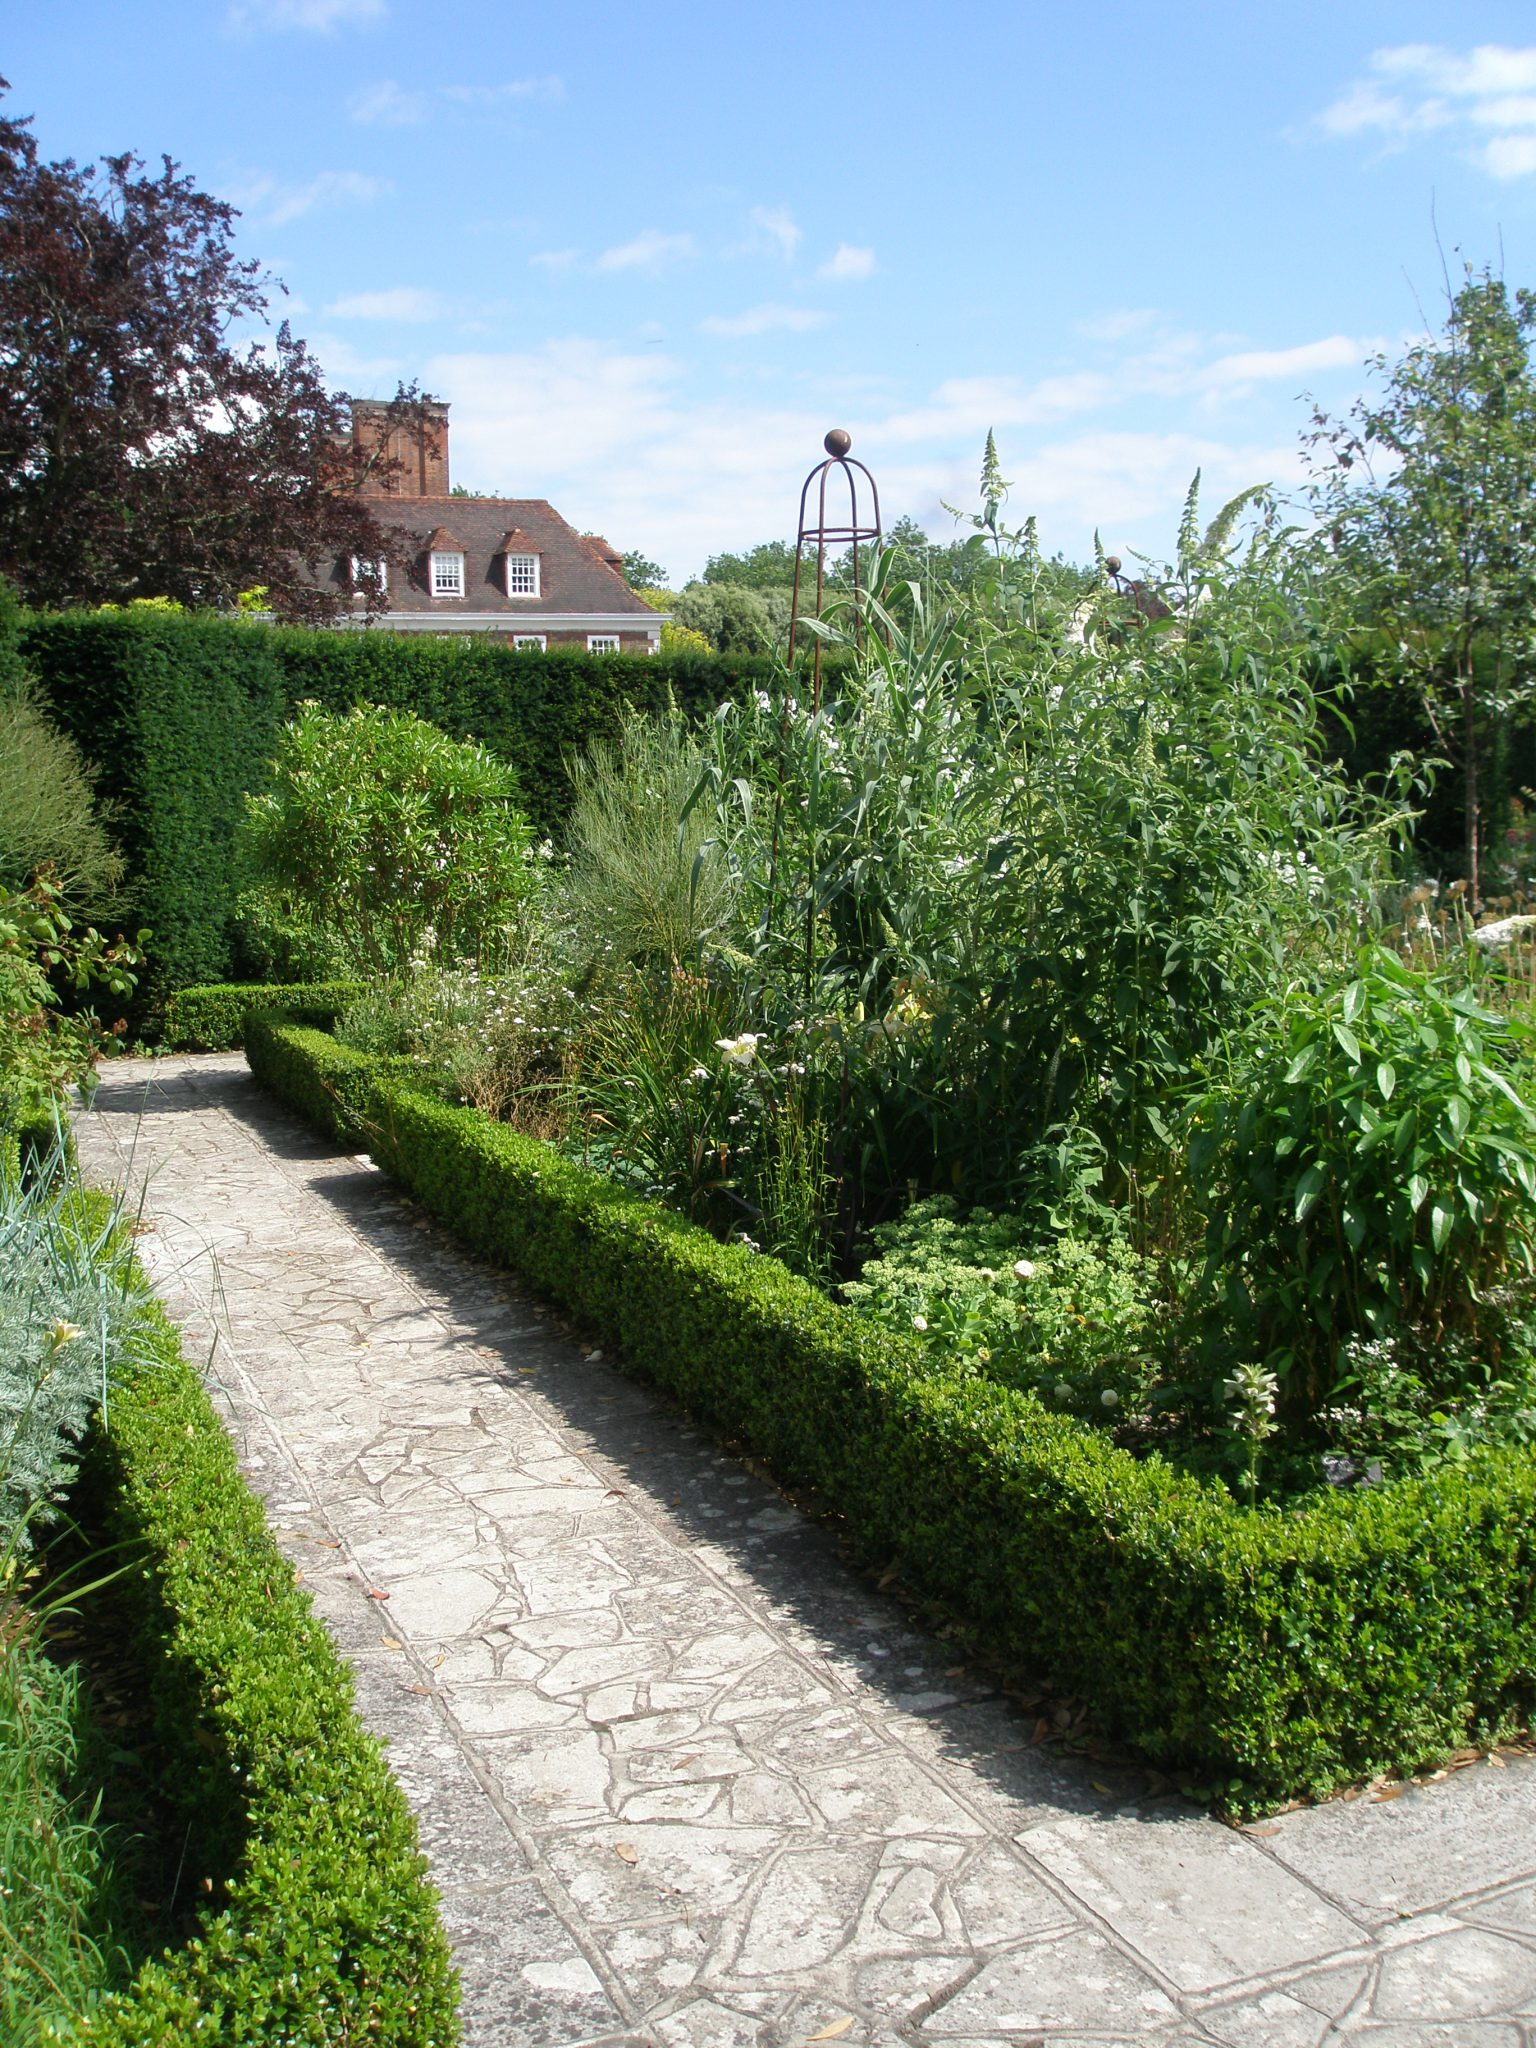 A glimpse of the House, from the White Garden